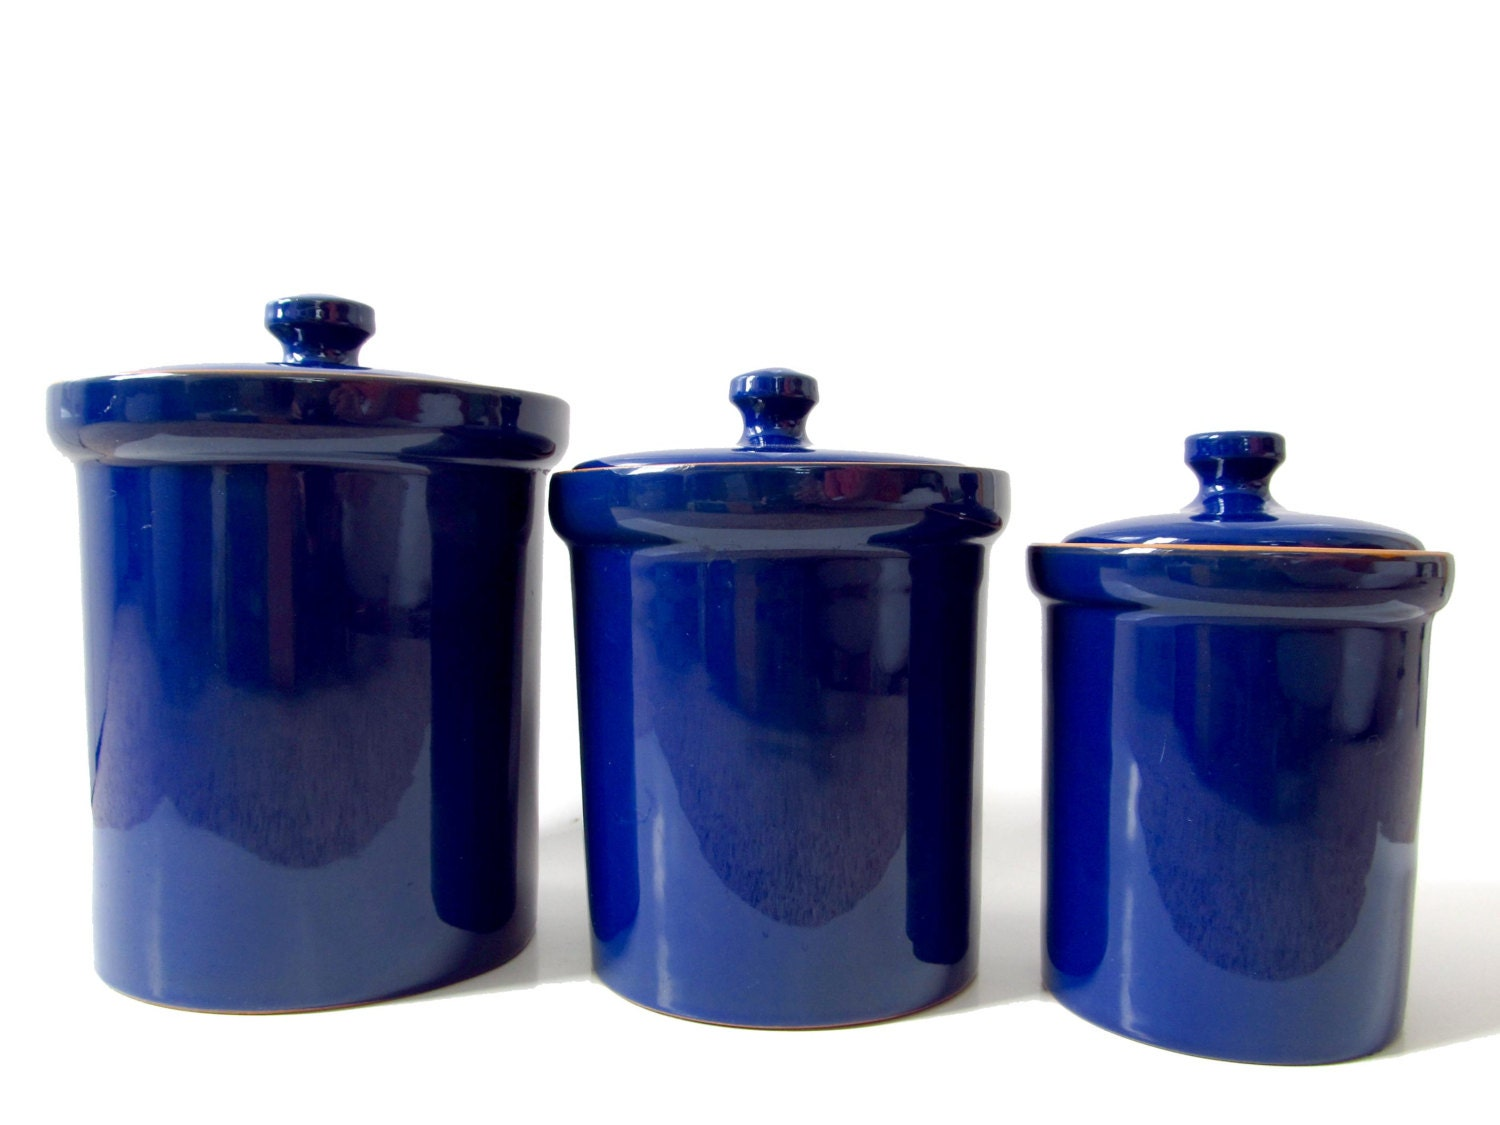 cobalt blue ceramic canister set made in italy italian kitchen 4 vintage cobalt blue ceramic kitchen canisters by rococodecor